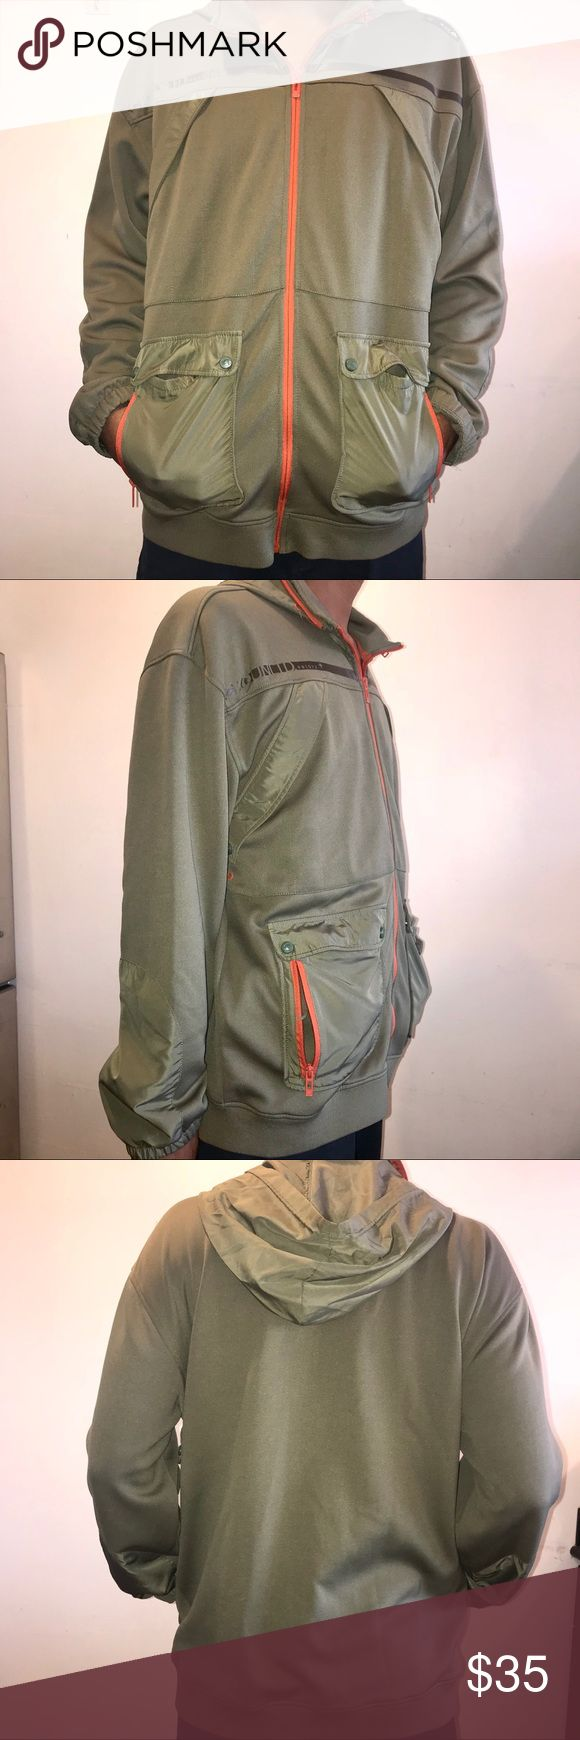 """Ecko Unlimited Army Green & Orange Zip Up Jacket Ecko Unlimited Army Green & Bright Orange Zip Up Jacket. Cotton polyester blend throughout jacket with windbreaker type material here & there on the pockets & hoodie. Slanted chest pockets, side buttoned & zippered pockets. Hood can be rolled up & zipped up in collar. Approx measurements Length 29.5"""", Width 26"""", Sleeve Length 25"""". Ecko Unlimited Jackets & Coats Lightweight & Shirt Jackets"""